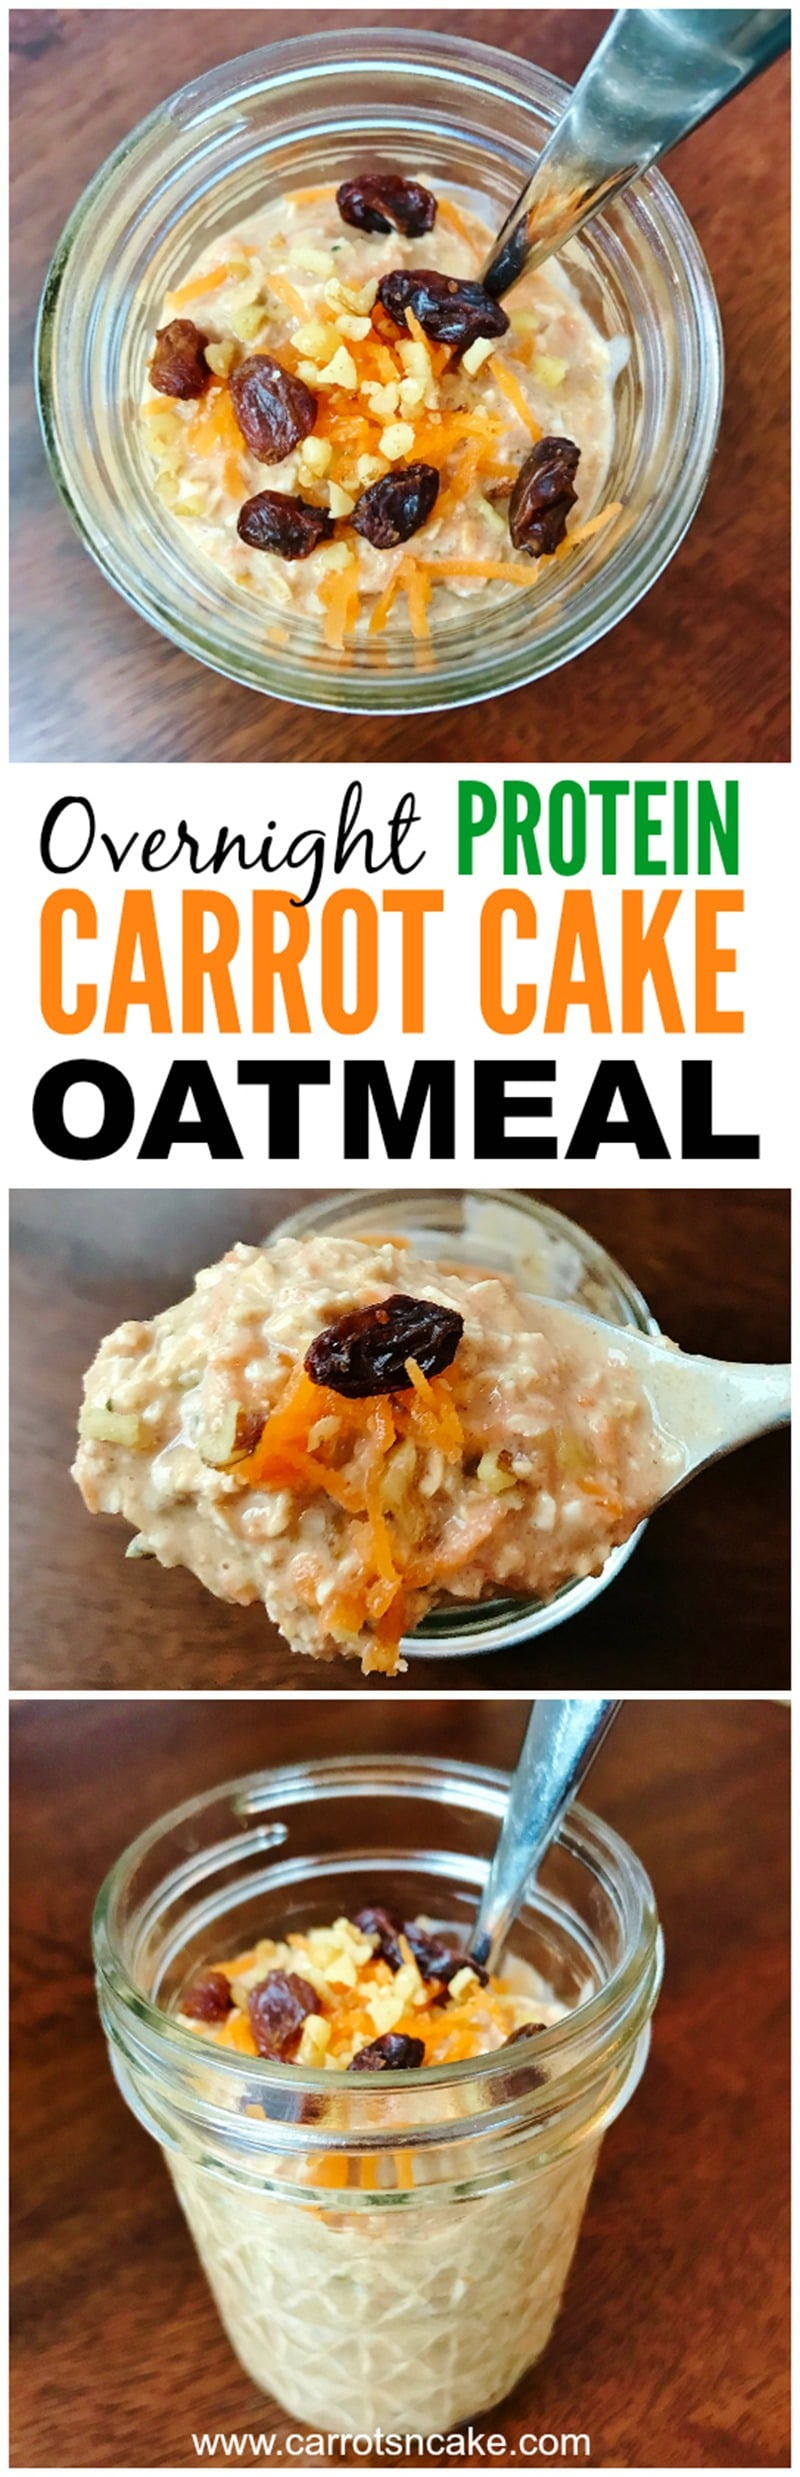 OVERNIGHT CARROT CAKE PROTEIN OATMEAL